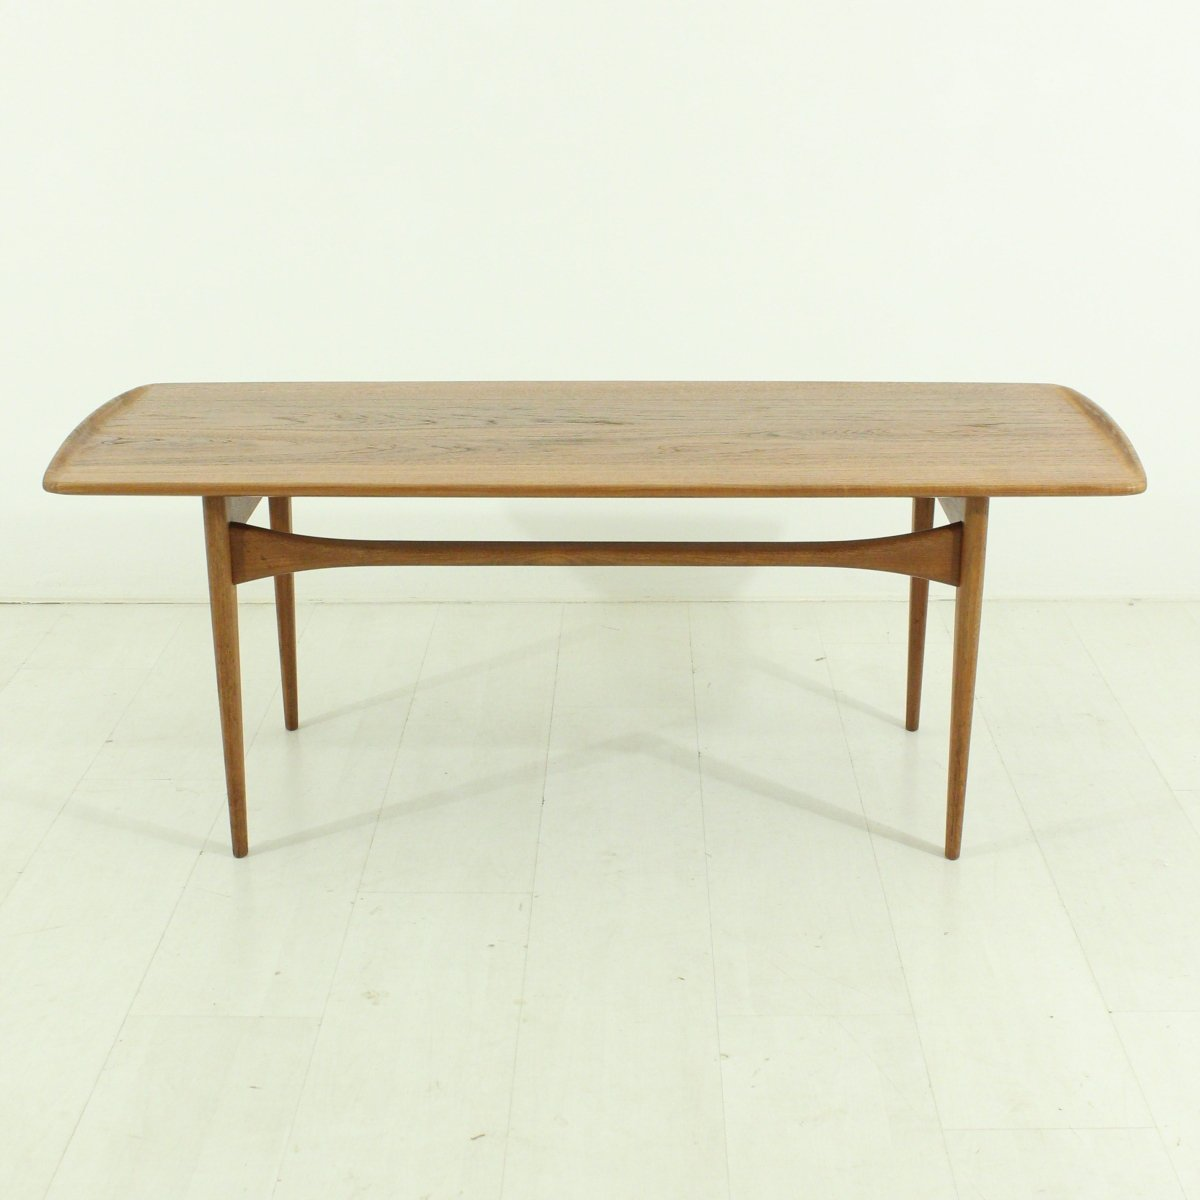 Danish teak coffee table by tove edvard kindt larsen for france danish teak coffee table by tove edvard kindt larsen for france son 1920s geotapseo Images